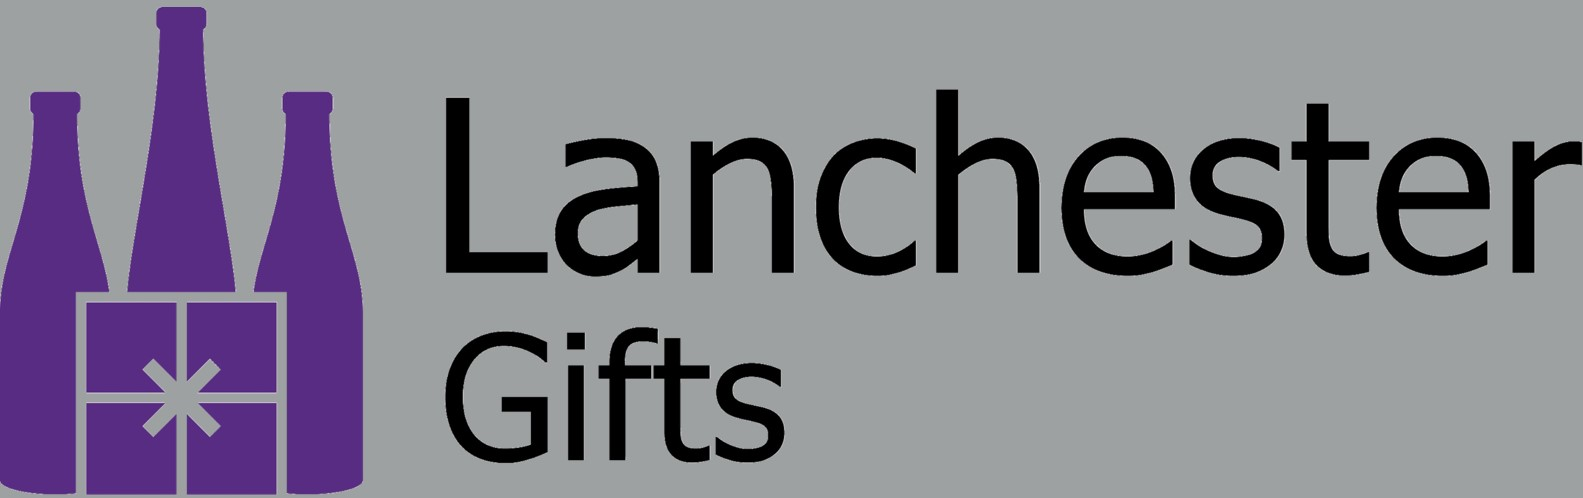 Image: Lanchester Gifts